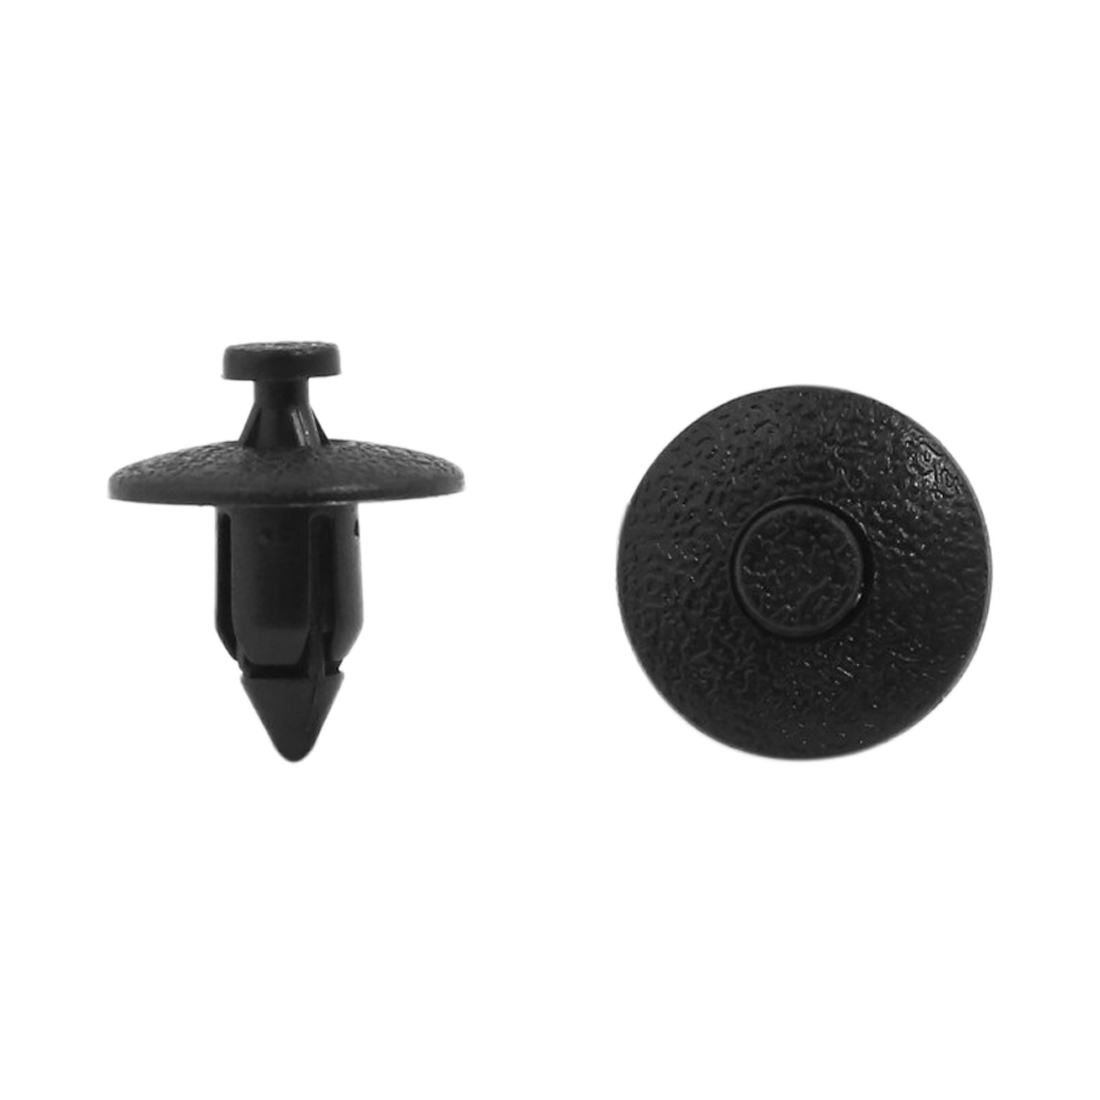 Car Bumper Fender 8mm Hole Black Plastic Rivets Fasteners 200pcs Fits for Toyota